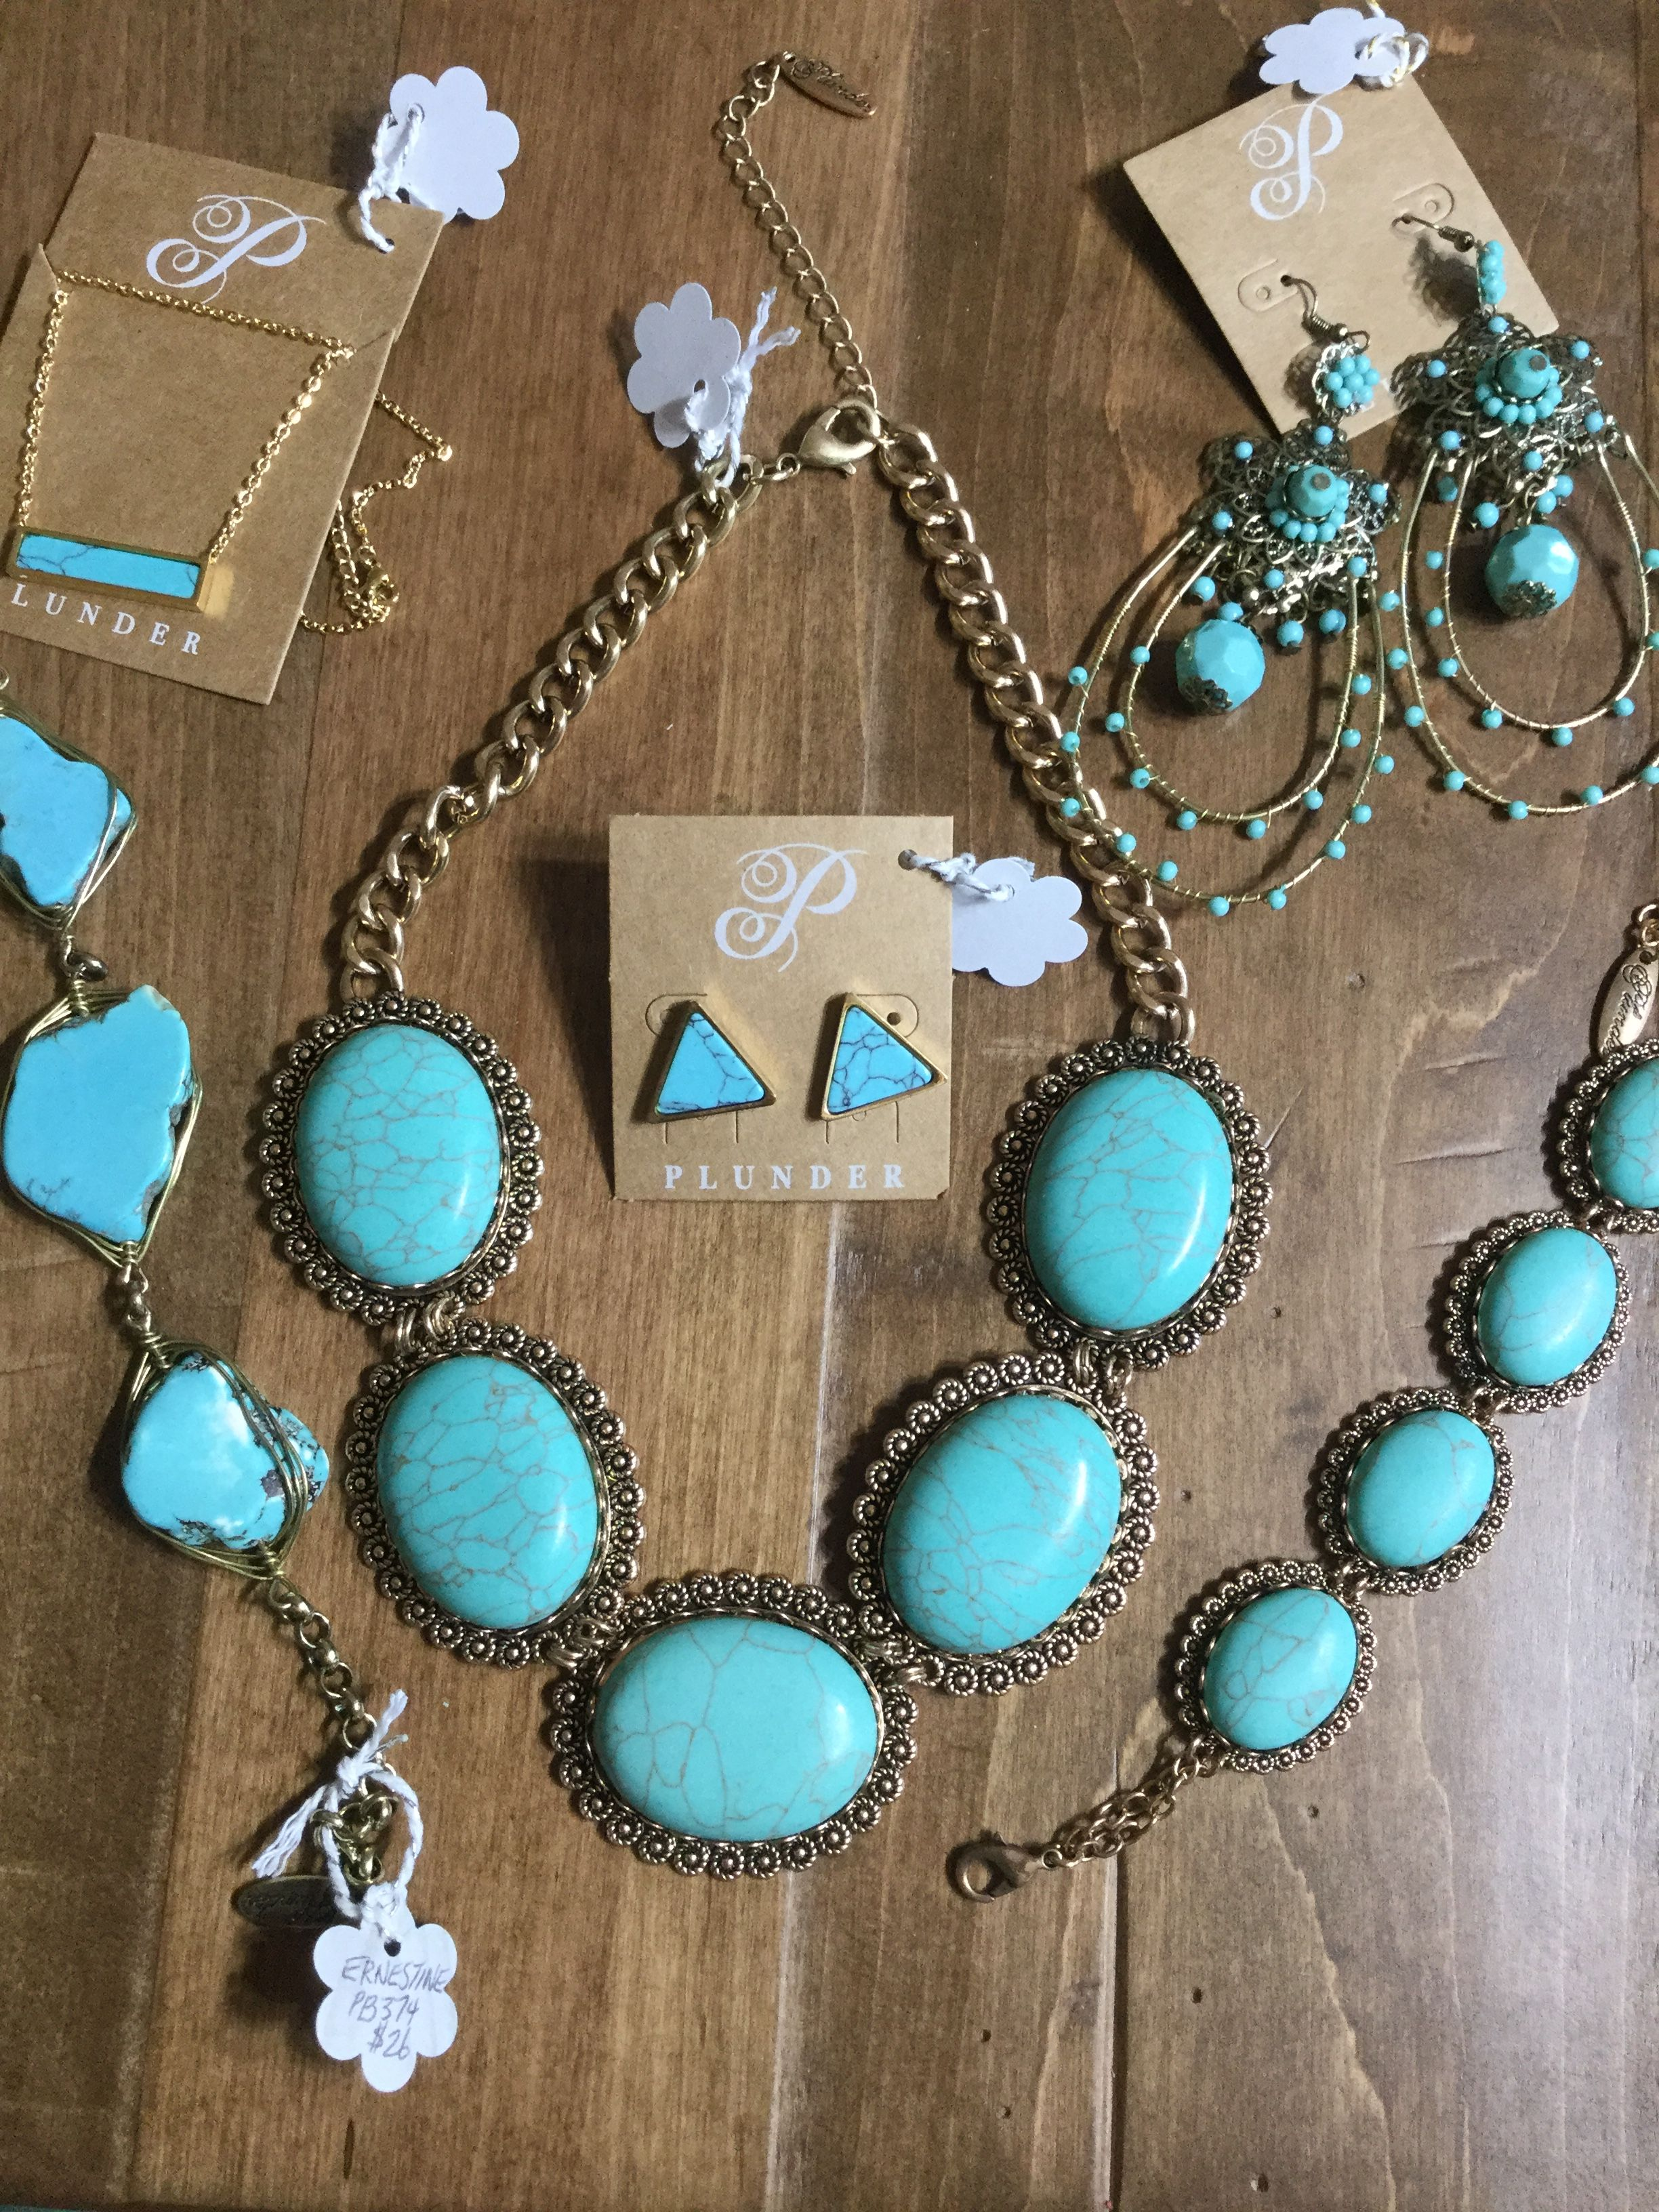 b7f31cdde Plunder has you covered in beautiful turquoise color gems ...